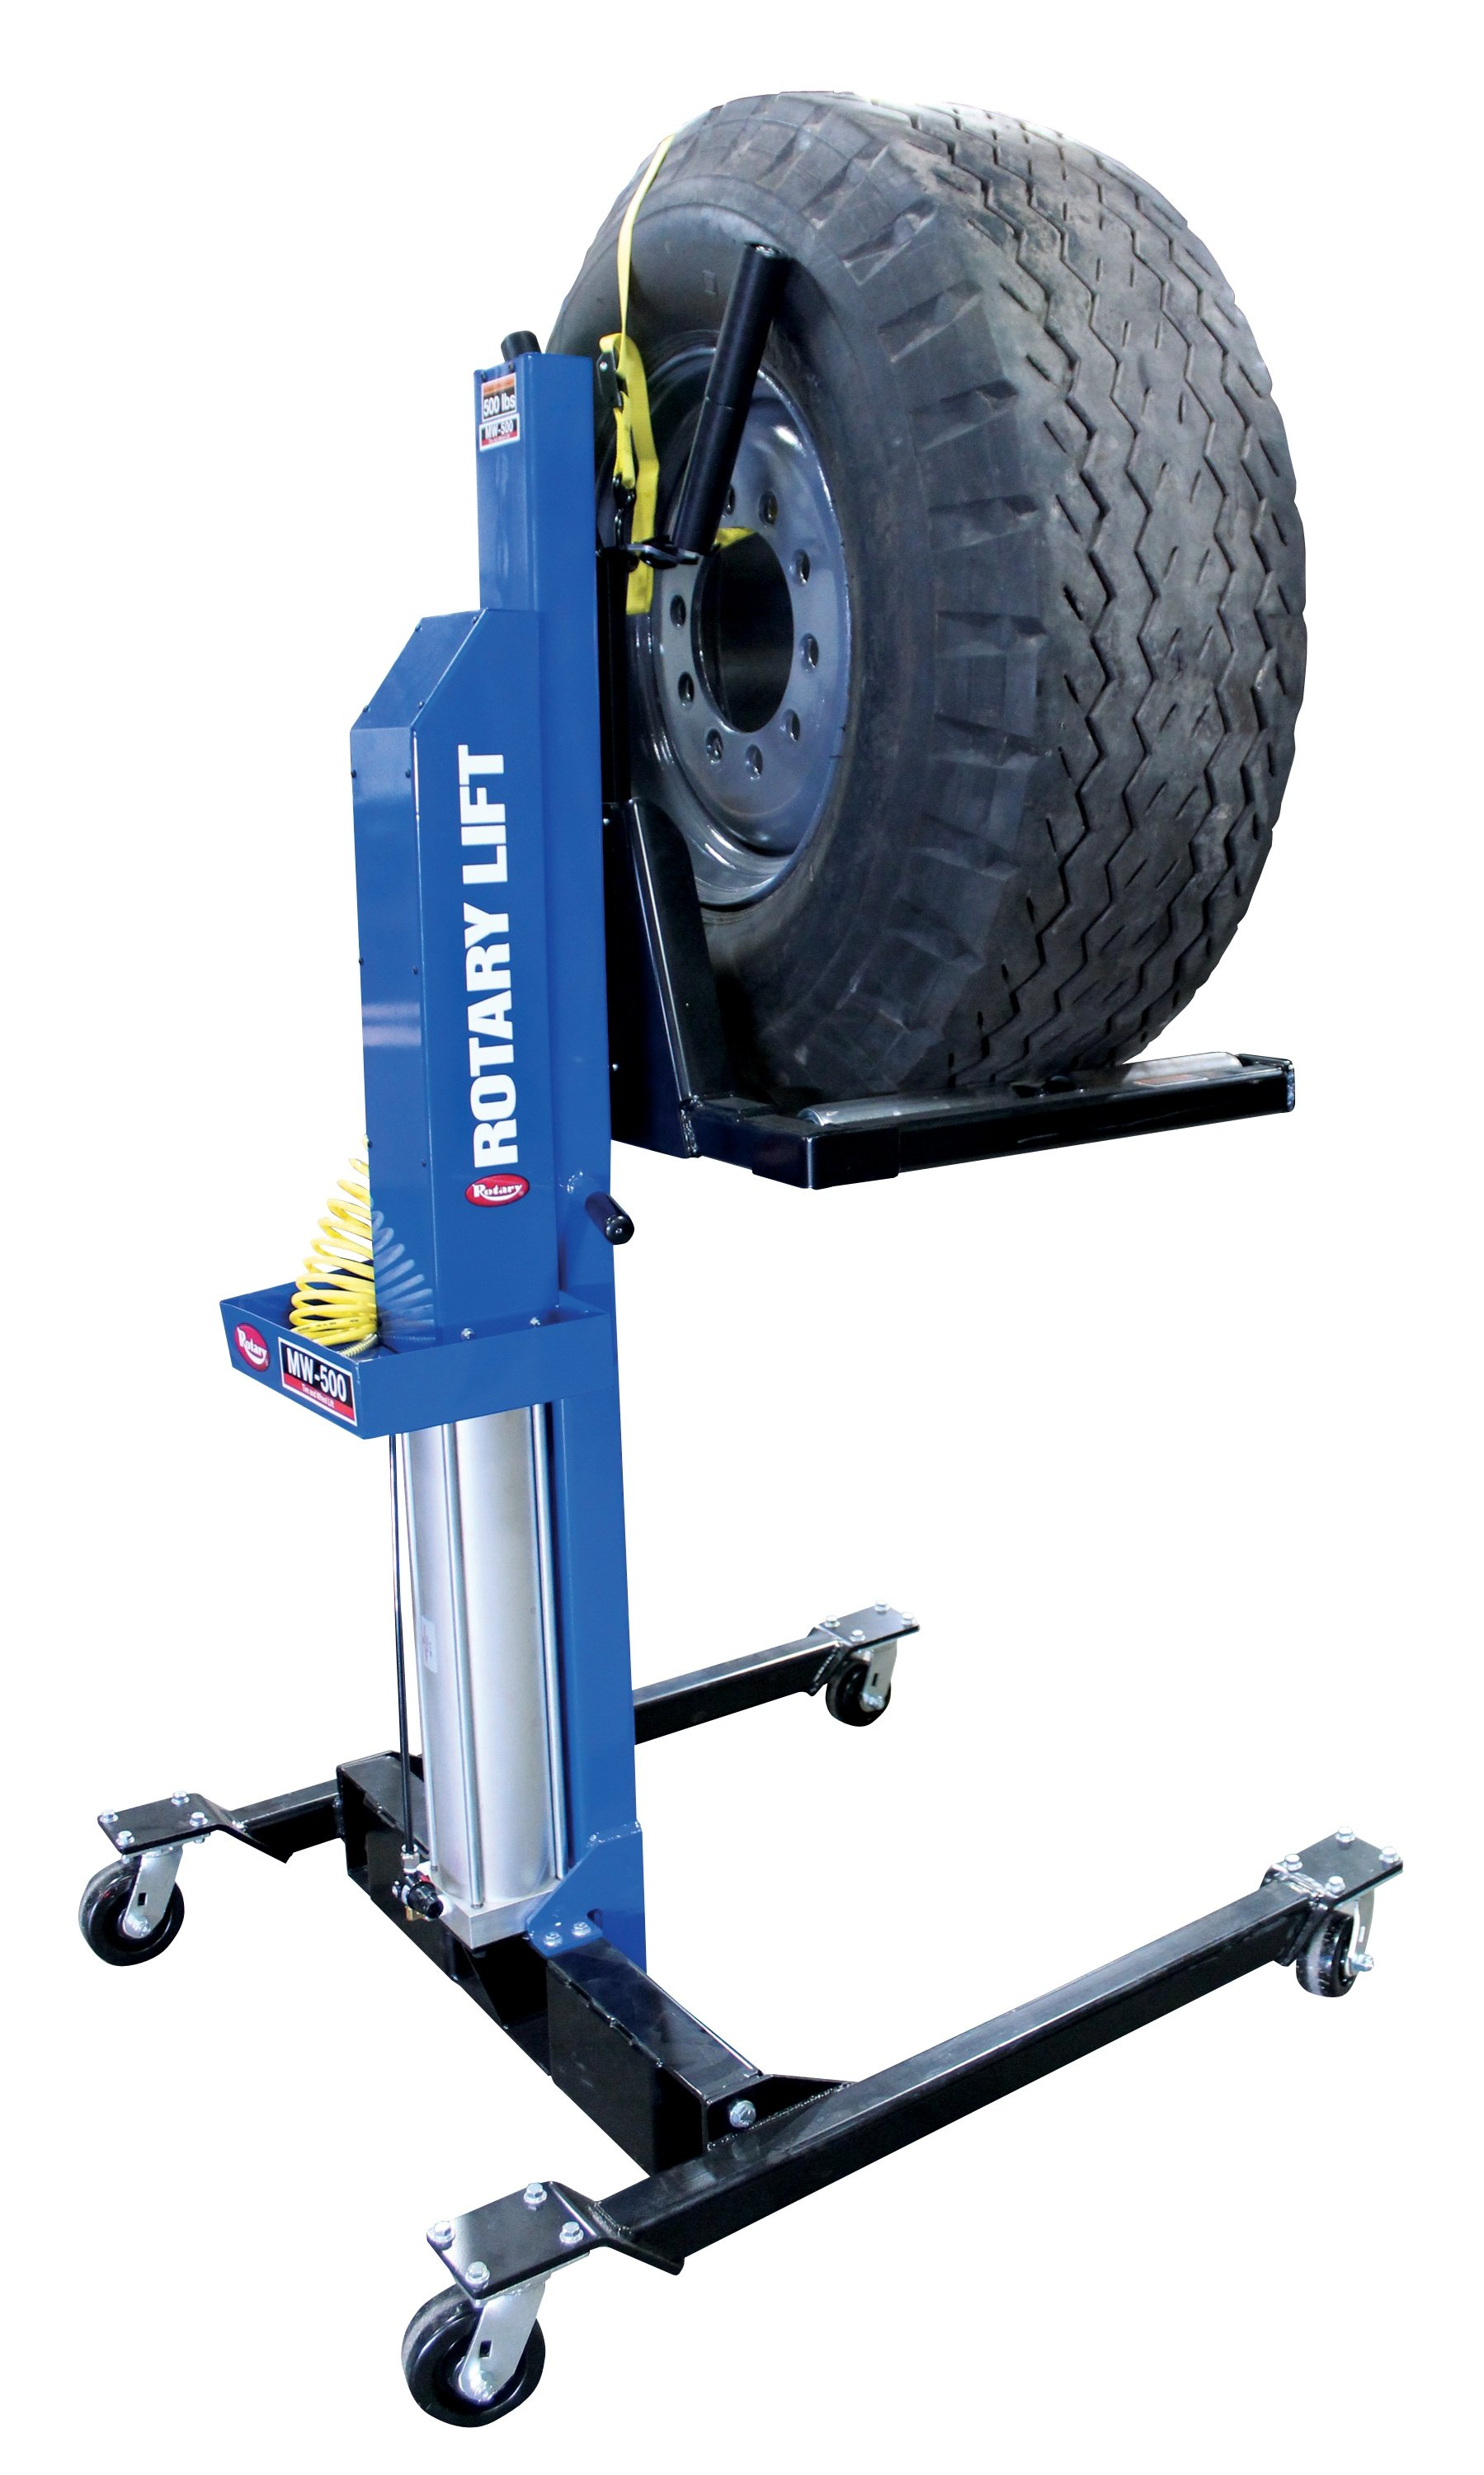 Rotary Lift Introduces MW-500 Mobile Wheel Lift